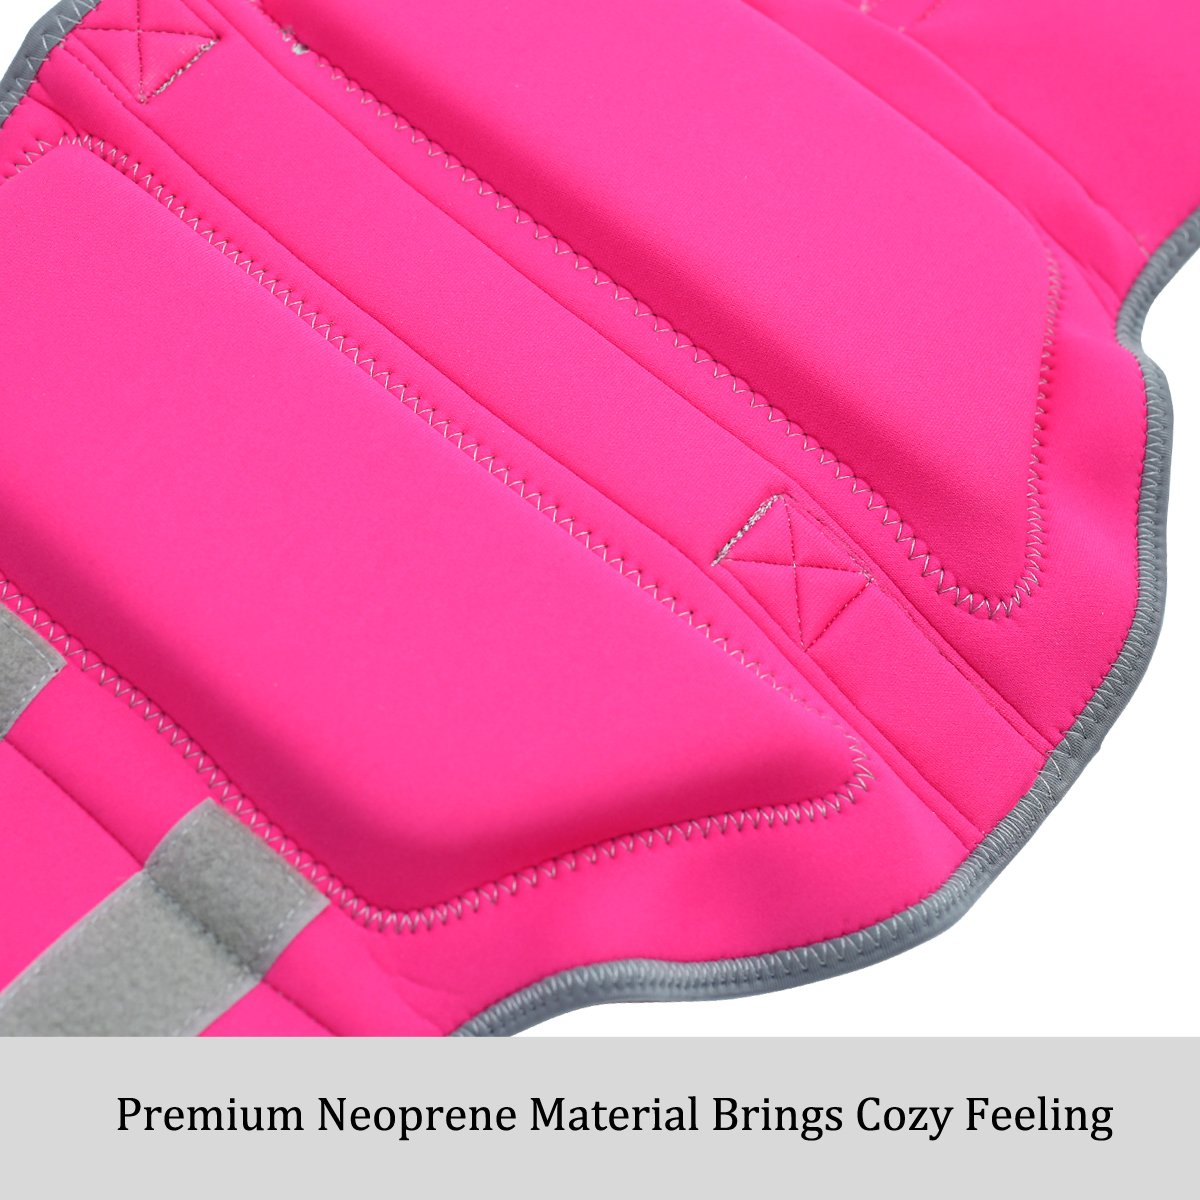 Vivaglory Pet Life Vest, Skin-Friendly Neoprene Dog Safety Vest with Superior Buoyancy and Rescue Handle, Reflective & Adjustable, Pink, Medium by Vivaglory (Image #4)